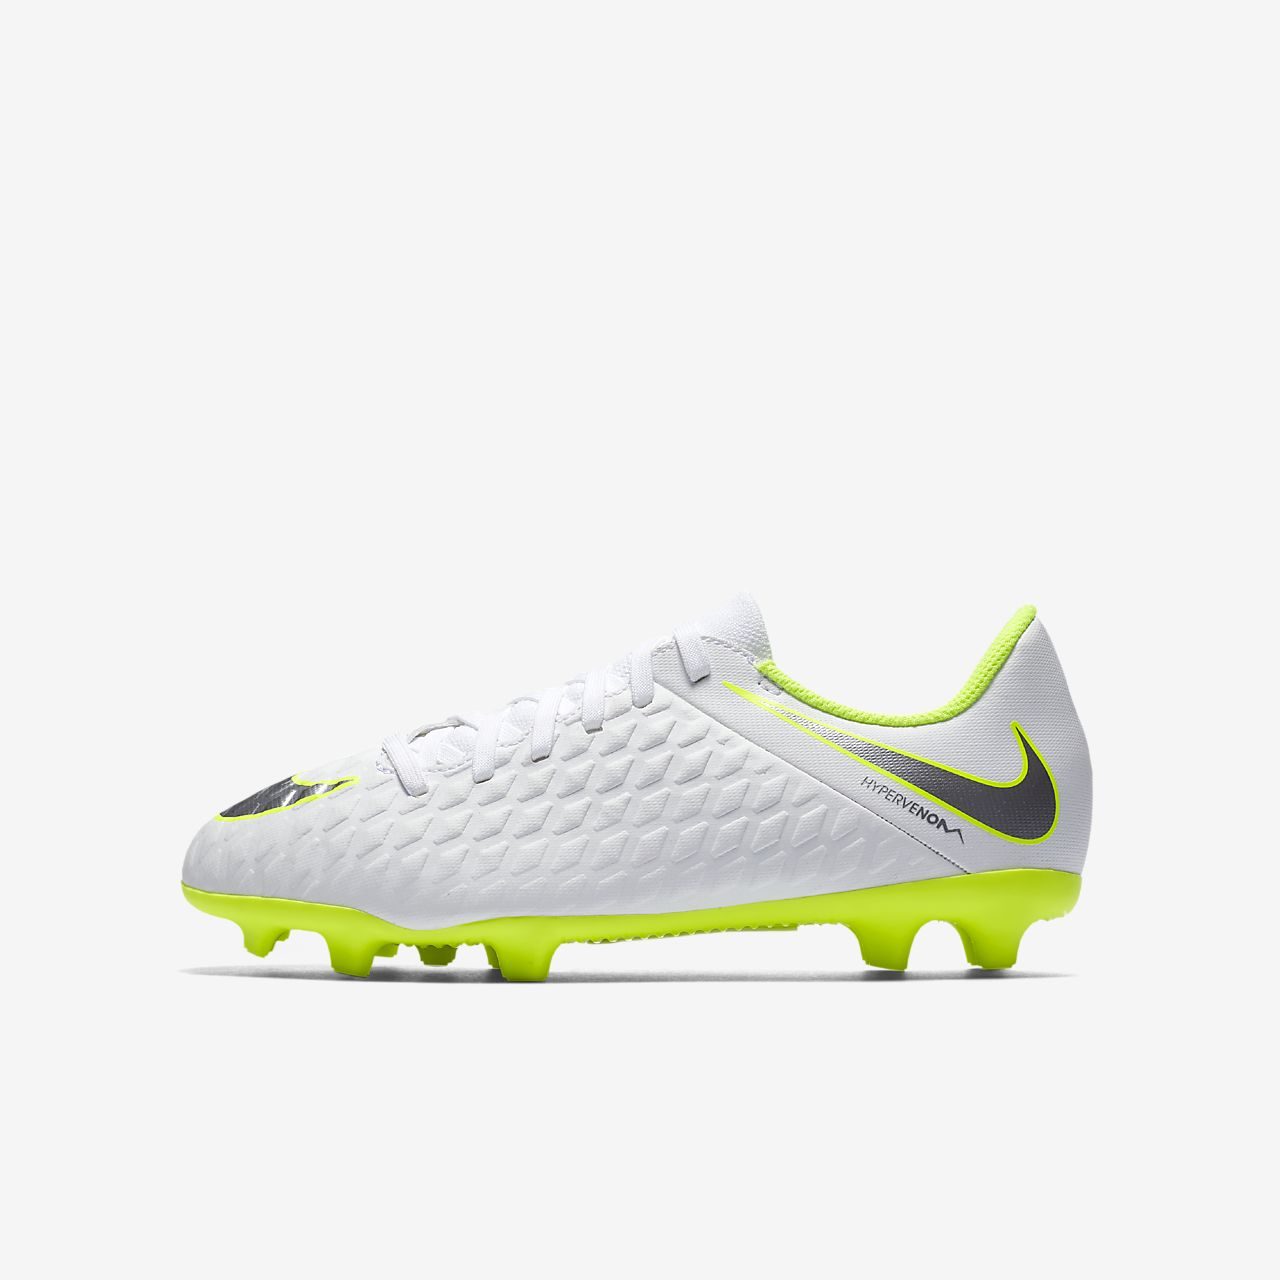 Nike - JUNIOR Phantom 3 Club FG Just Do It Nueva En Venta y4AbO